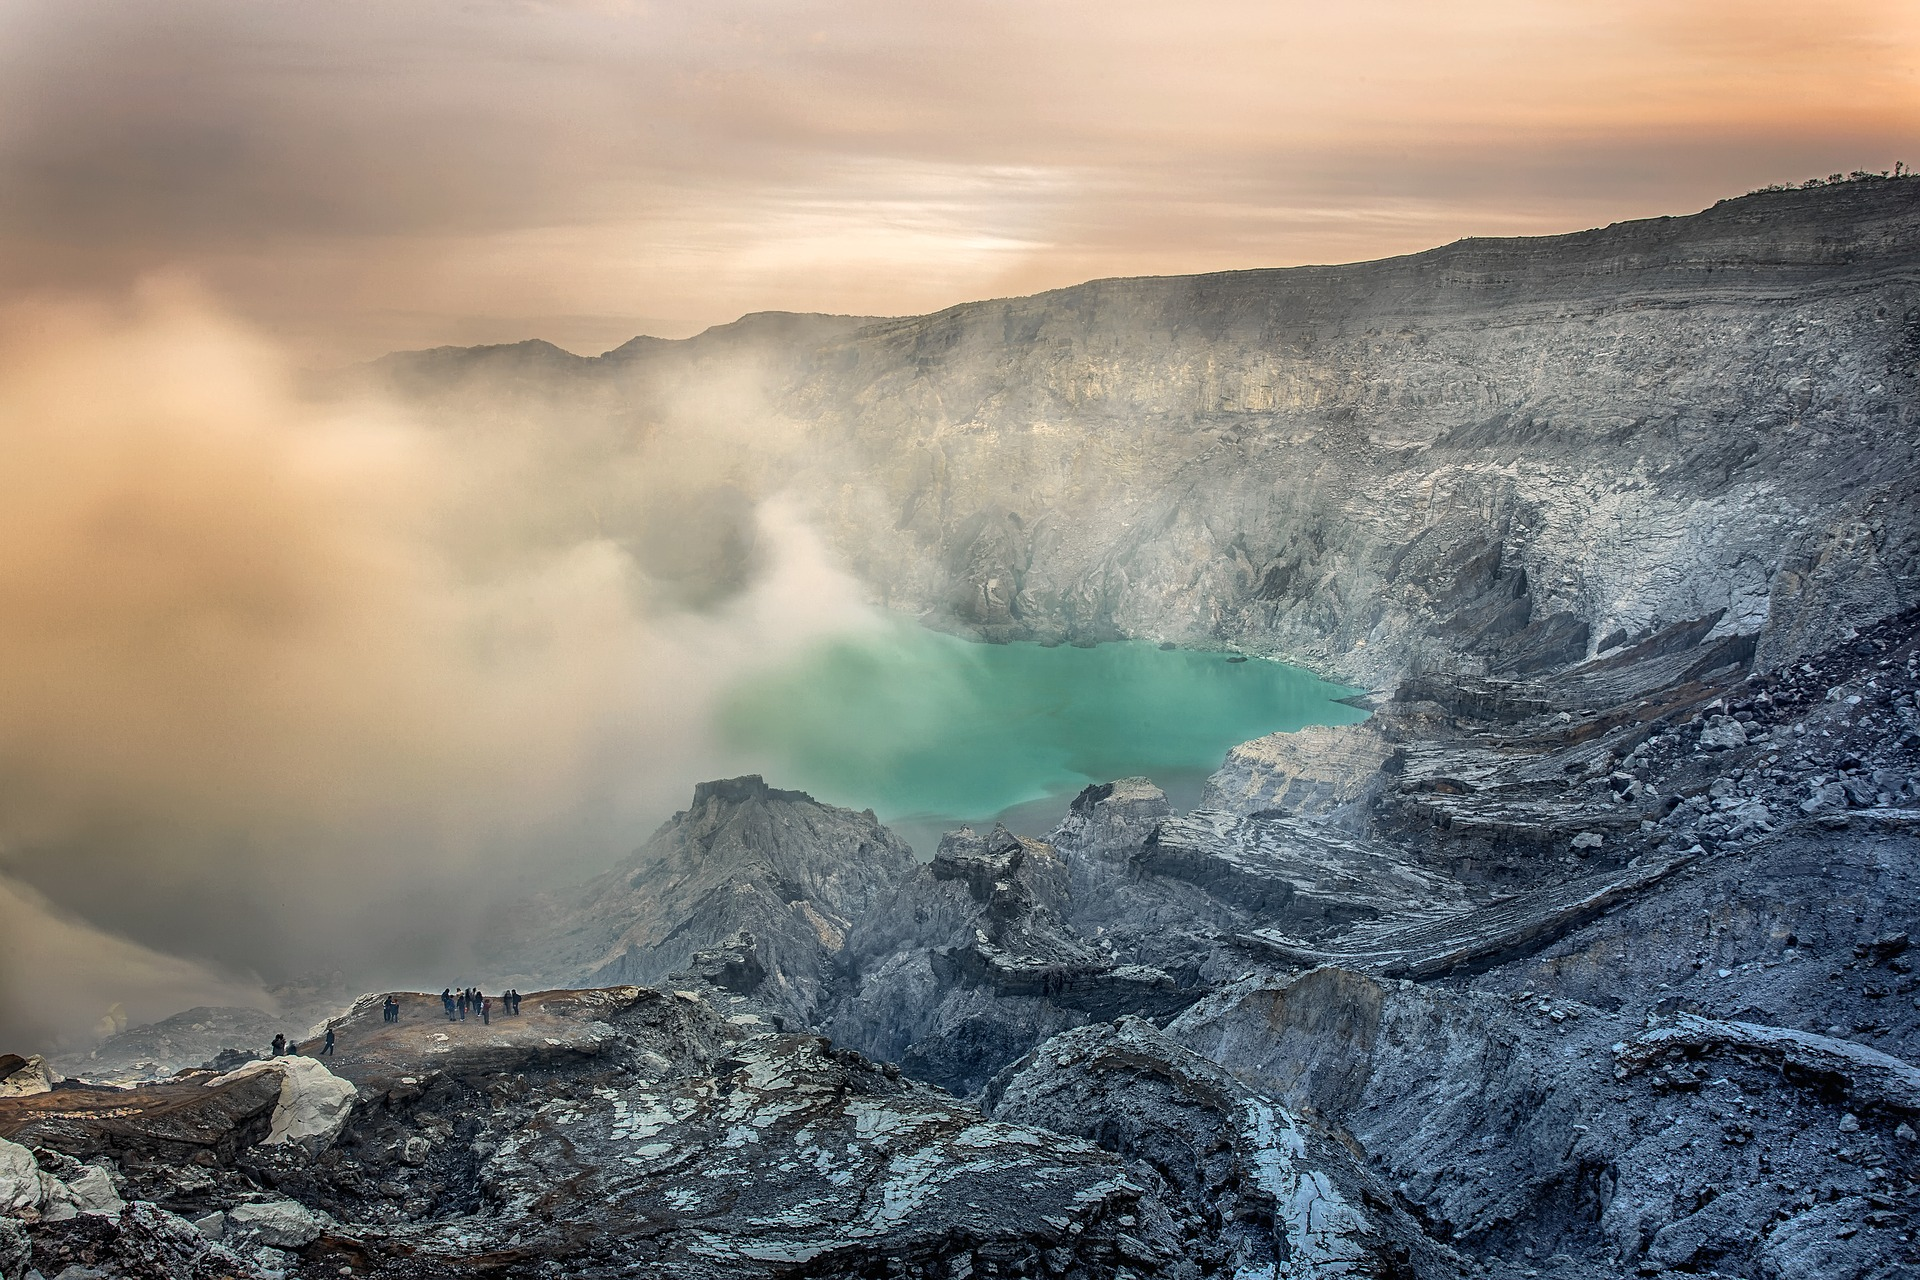 Volcano View, Activity, Human, Lake, Landscape, HQ Photo